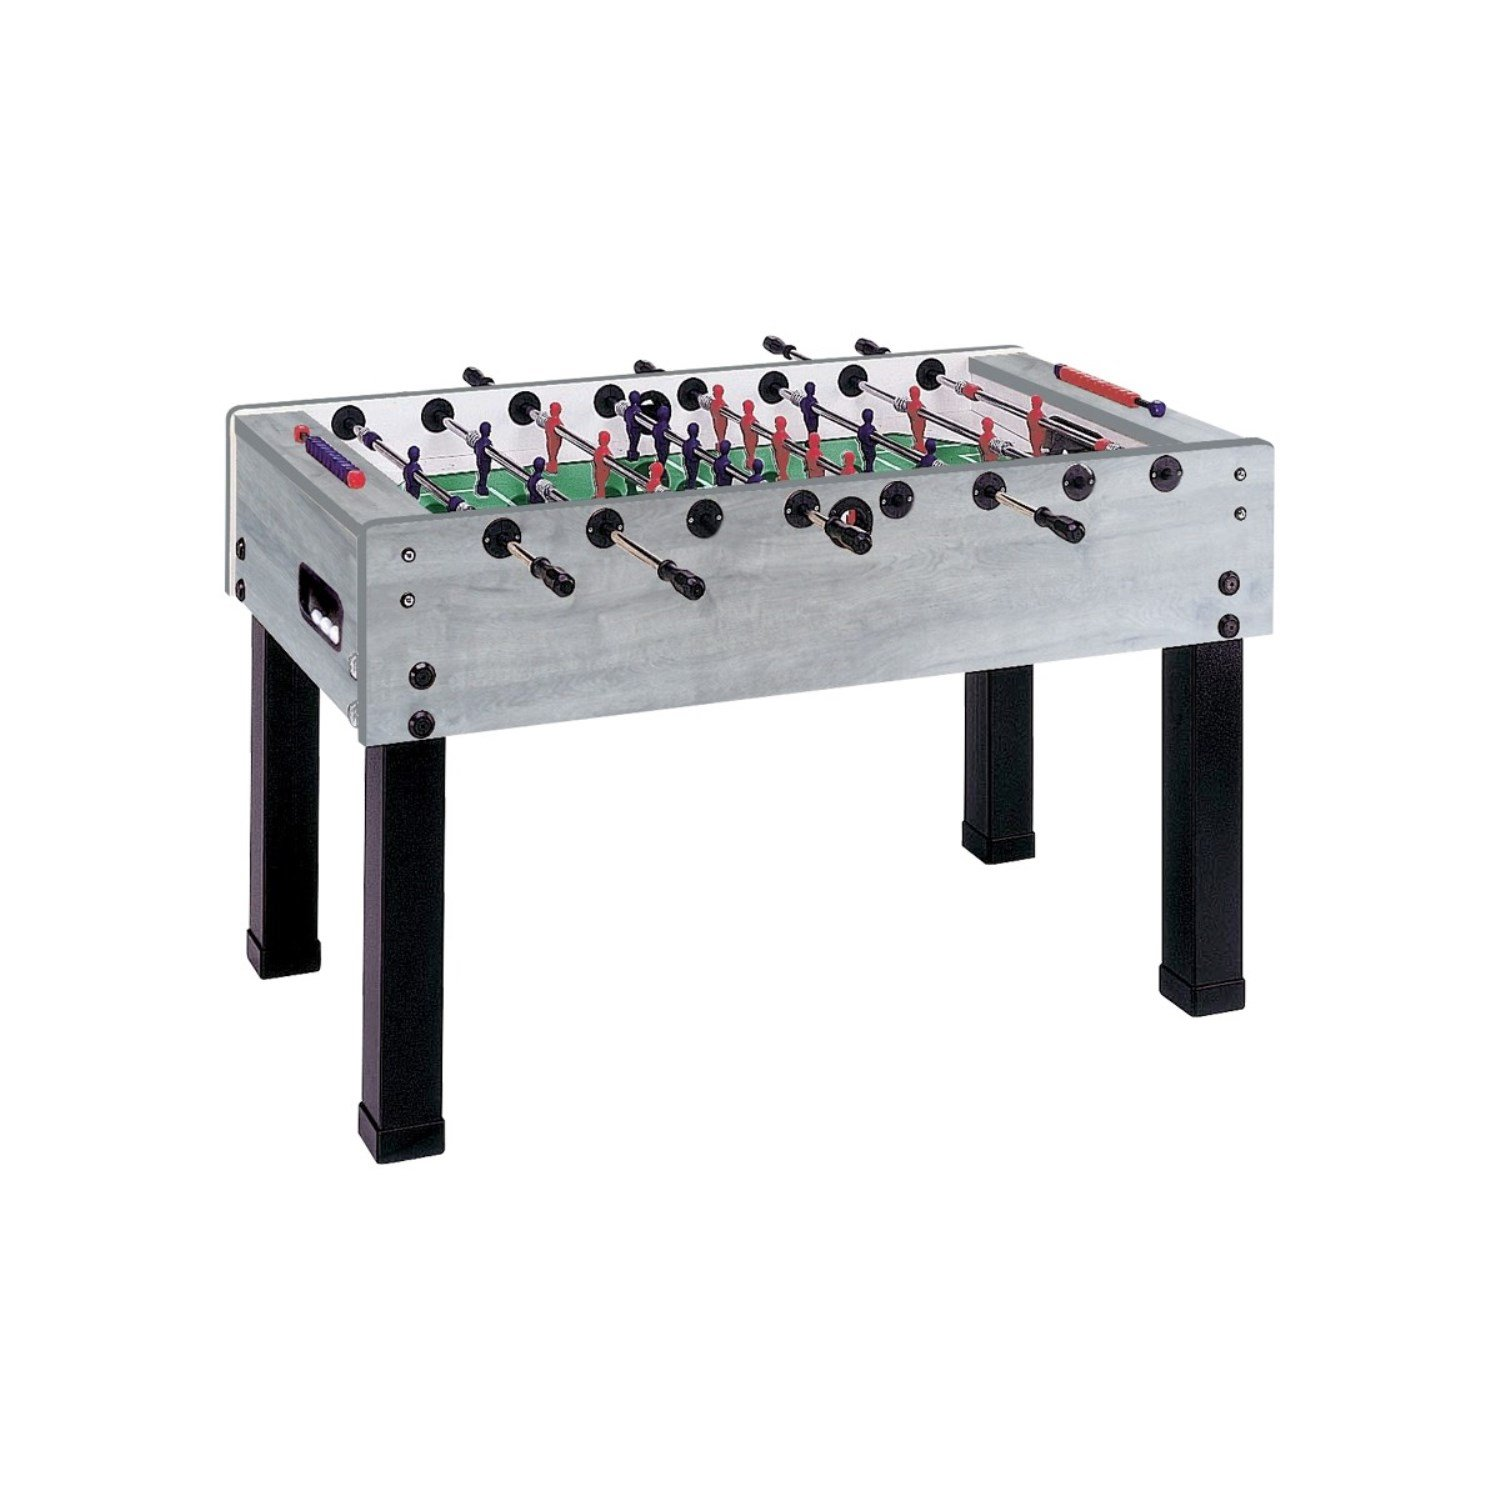 Garlando G-500 Grey Oak Foosball Table with Telescoping Steel Rods and Steel Ball Bearings. Includes 10 White Standard Balls.